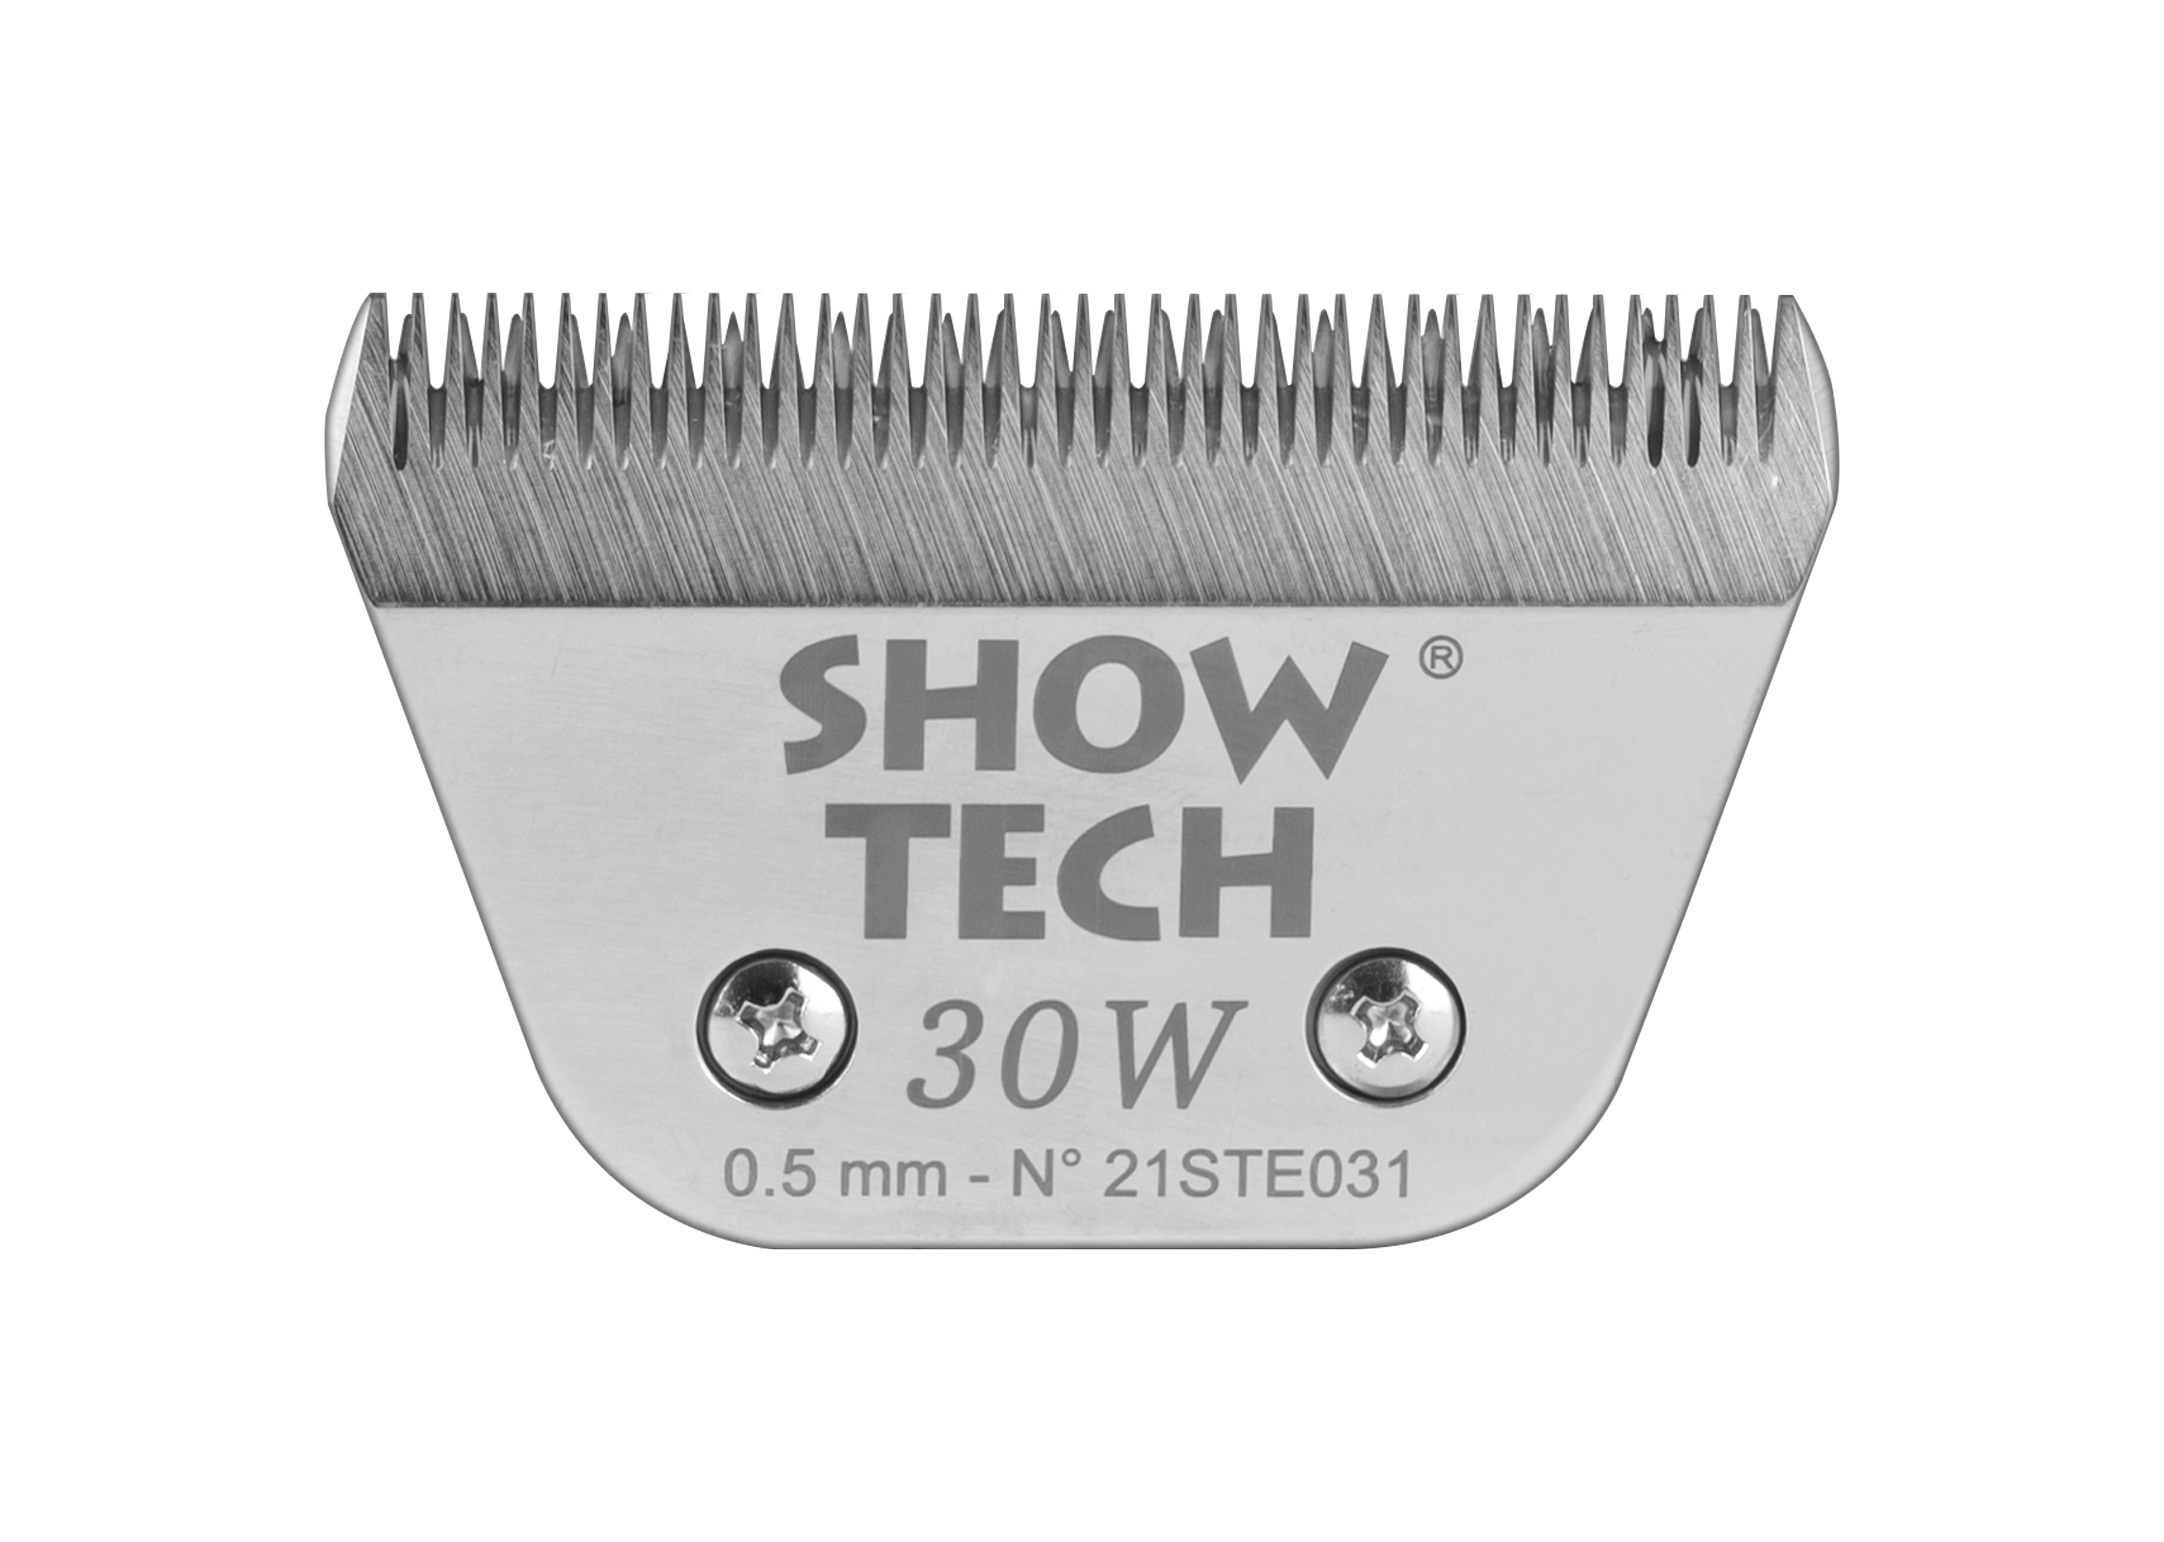 Show Tech Pro Blades snap-on Clipper Blade #30W - 0,5mm